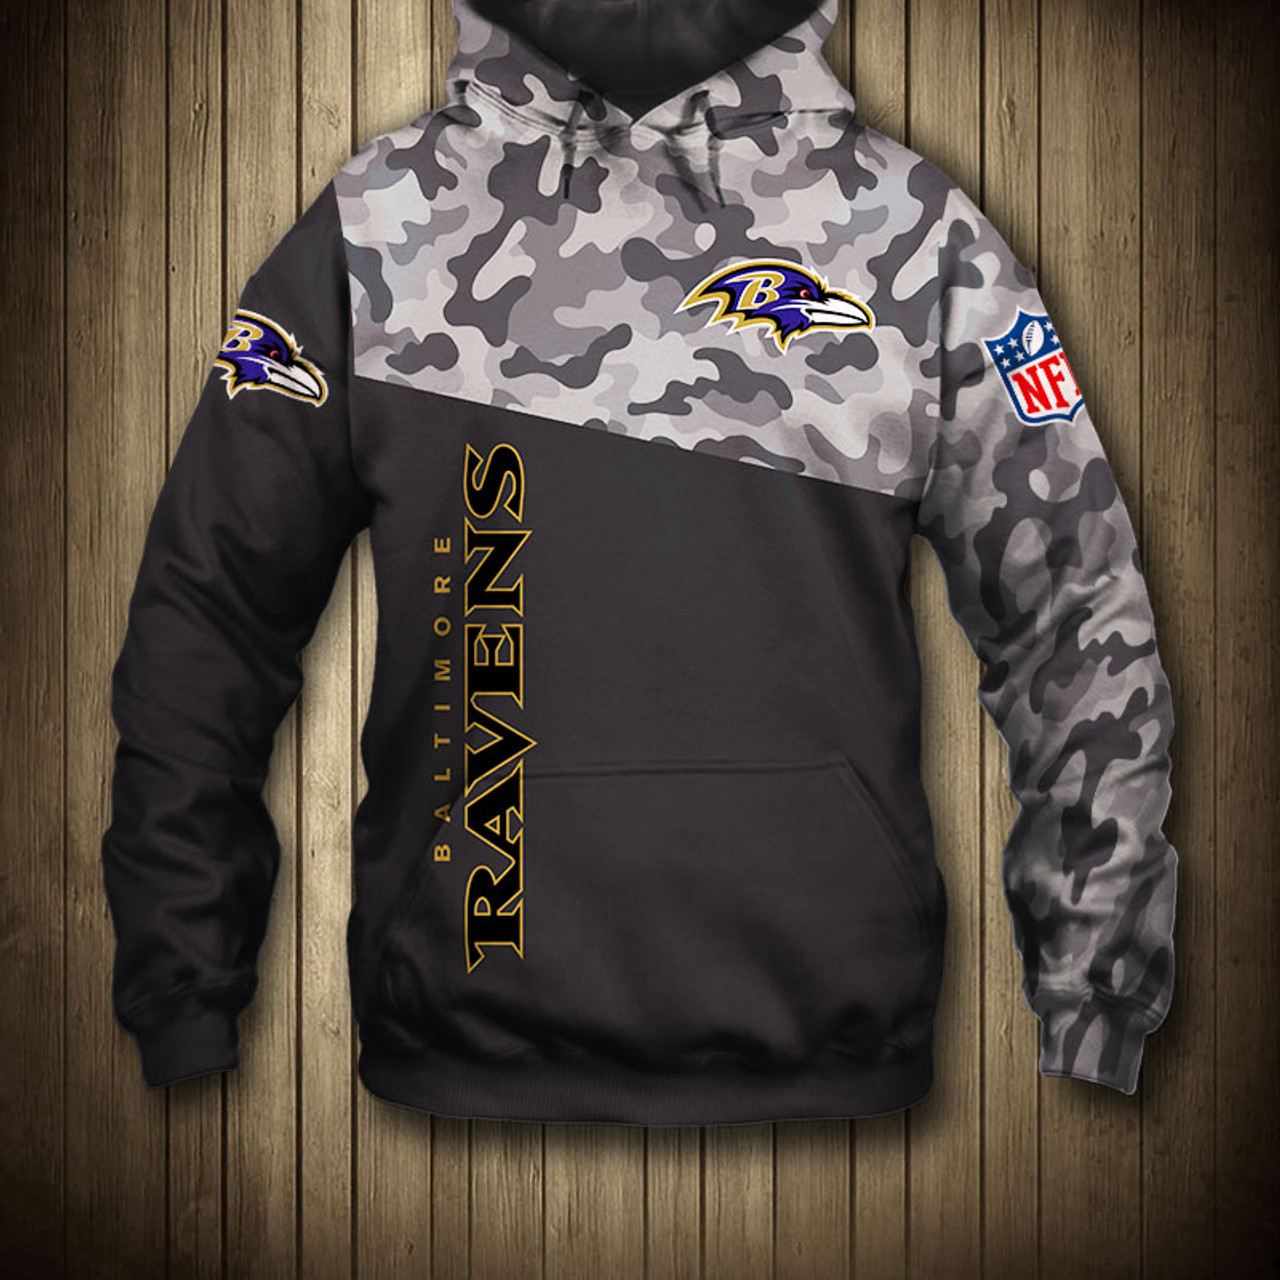 free shipping b7318 dfee4 **(OFFICIAL-N.F.L.BALTIMORE-RAVENS-CAMO.DESIGN-PULLOVER-HOODIES/3D-CUSTOM-RAVENS-LOGOS  & OFFICIAL-RAVENS-TEAM-COLORS/NICE-3D-DETAILED-GRAPHIC-PRINTED-...